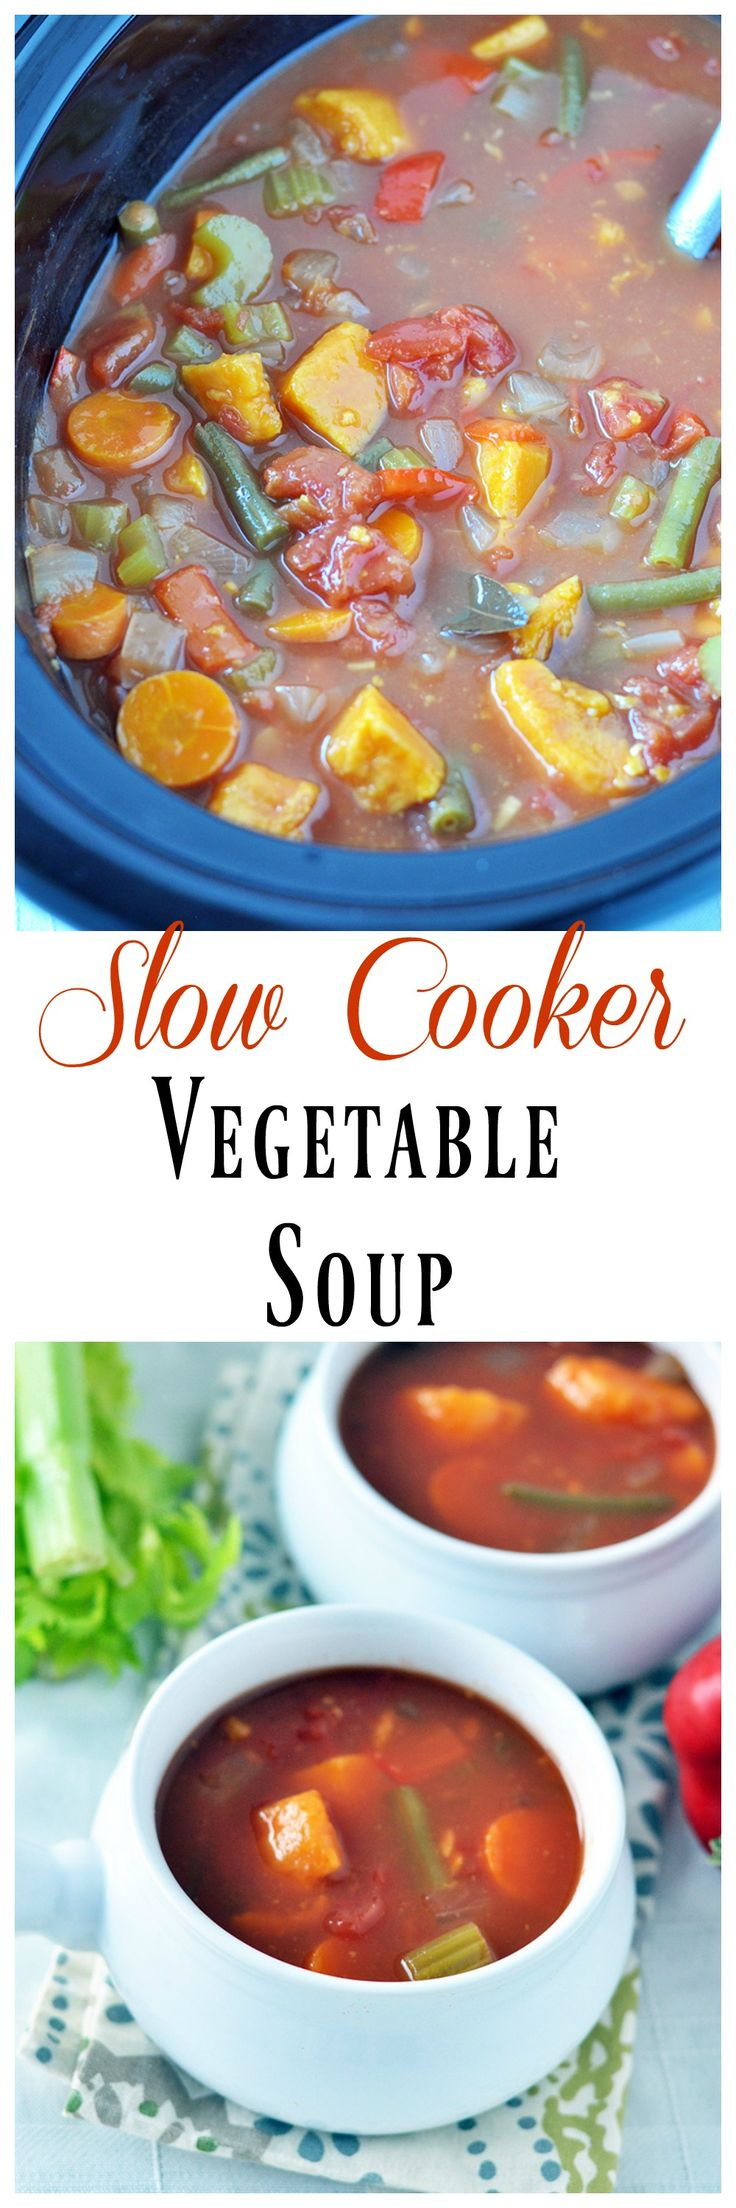 Slow Cooker Vegetable Soup. Ingredients: broth, onion, celery, carrots, sweet potato, green beans, bell pepper, garlic, dried parsley, sea salt. Cook 3-5 on High